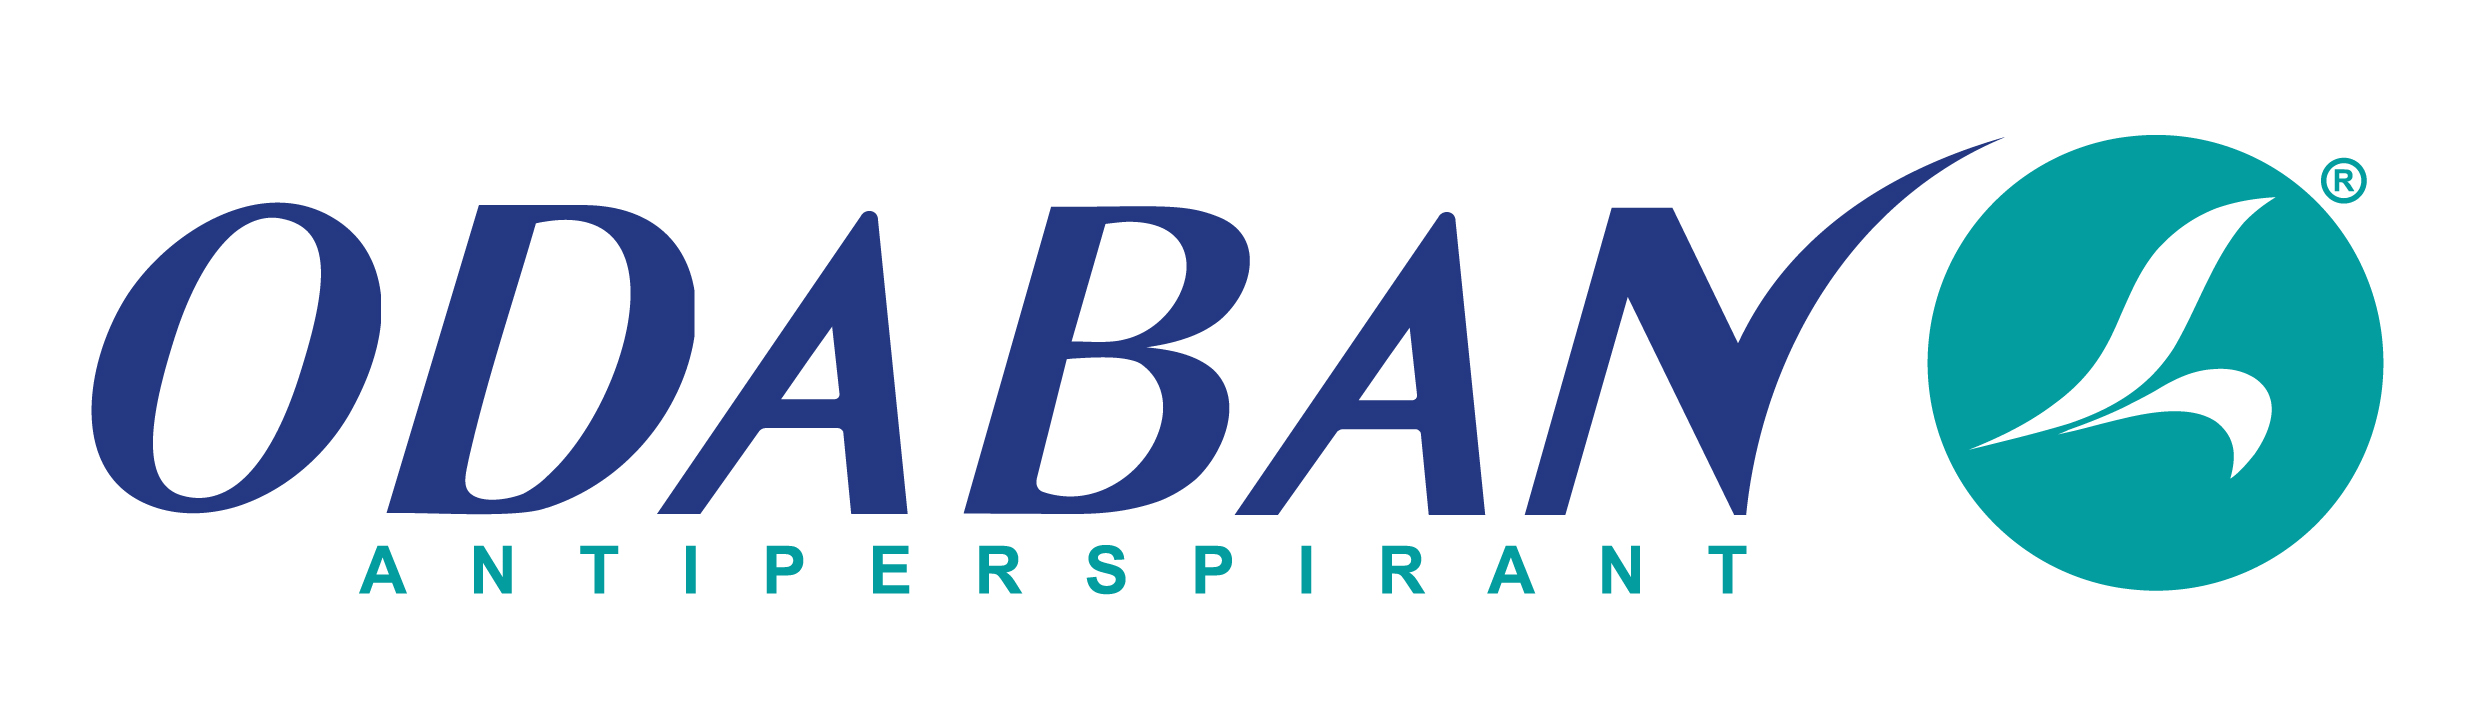 odaban_logo_english.jpg